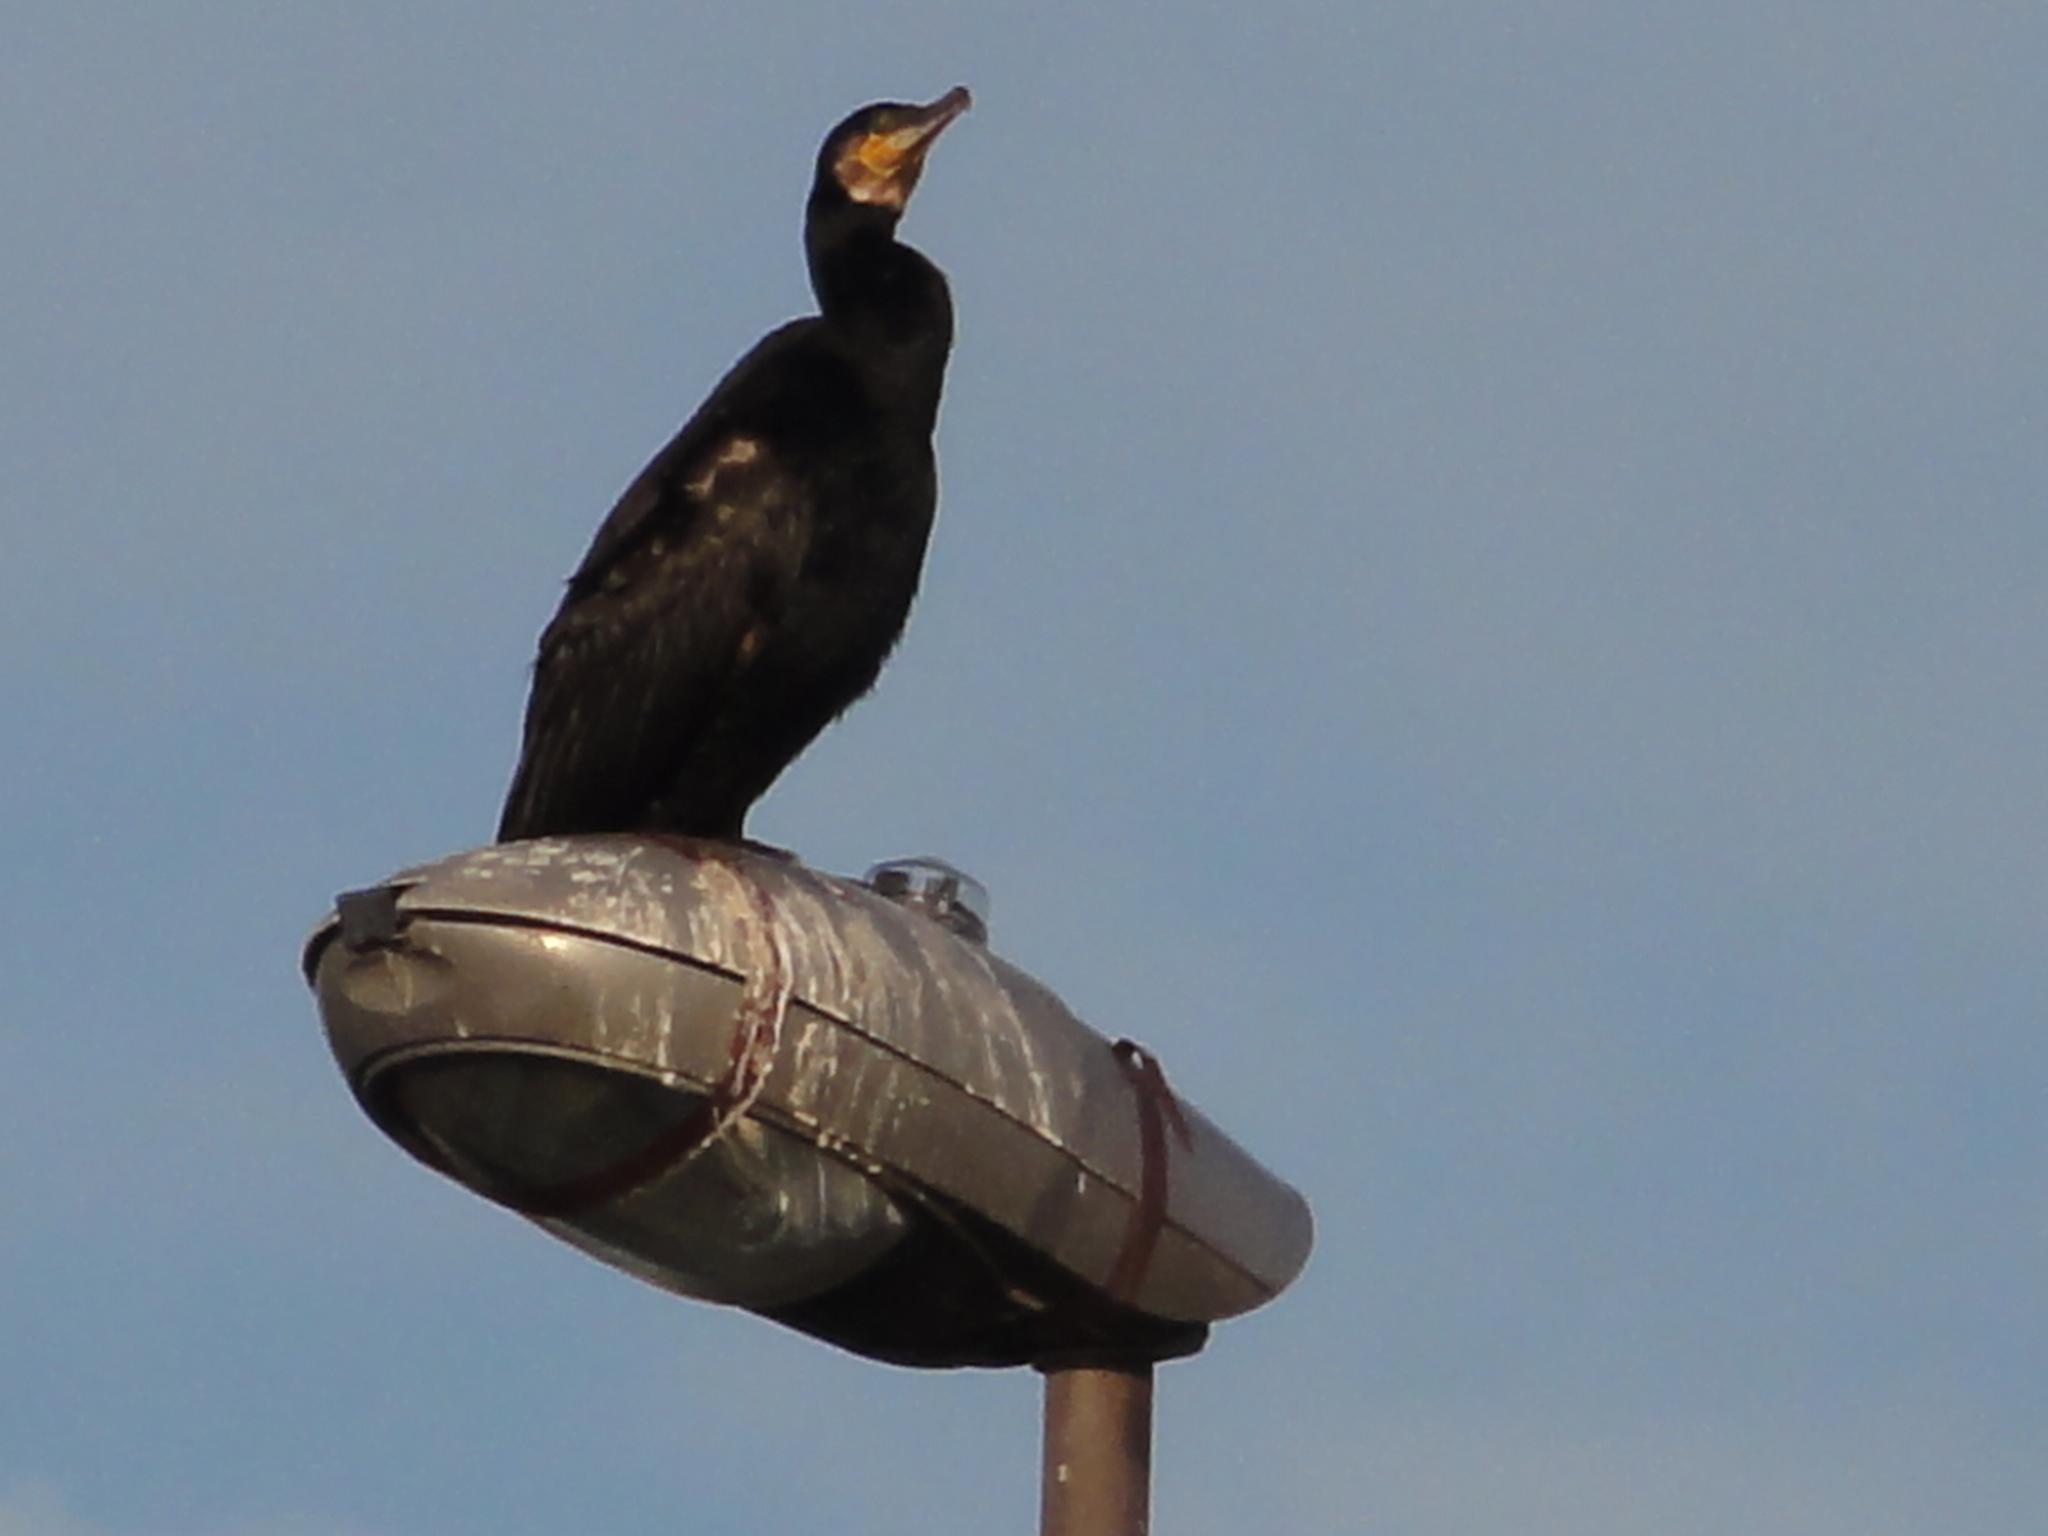 BIRD ON A LAMP POST by mikewoodland21